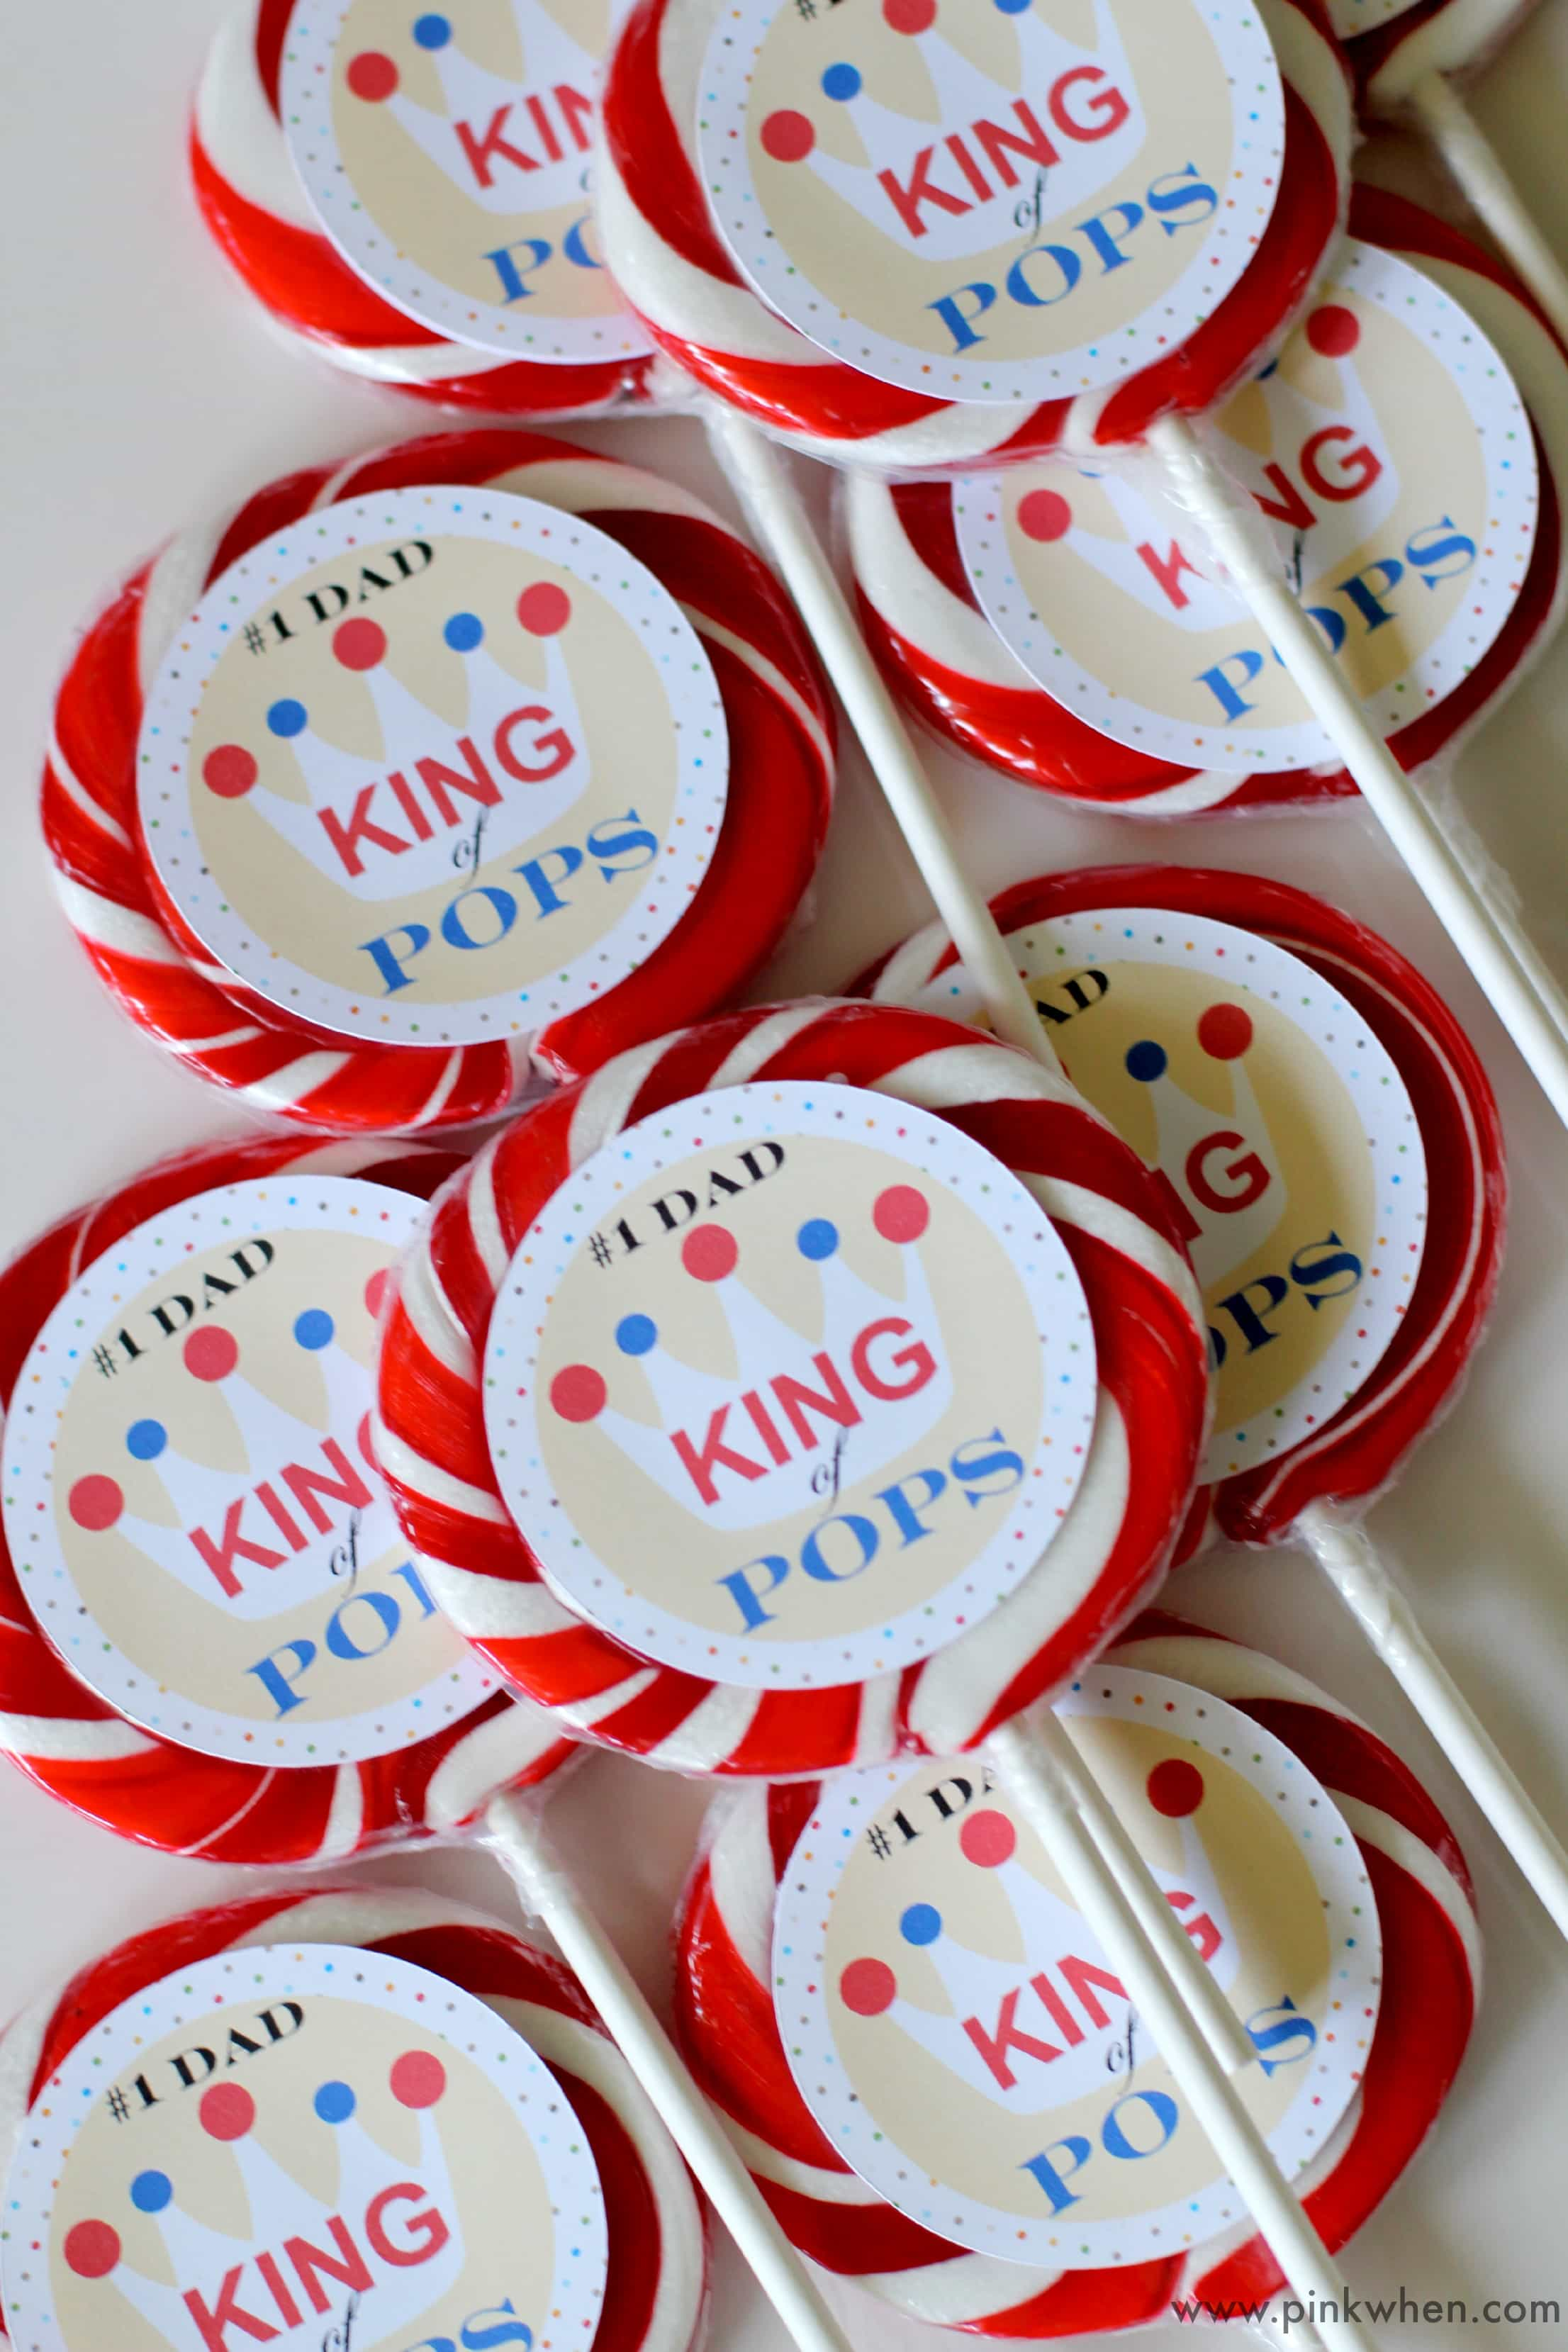 king of pops father u0027s day free printable pinkwhen